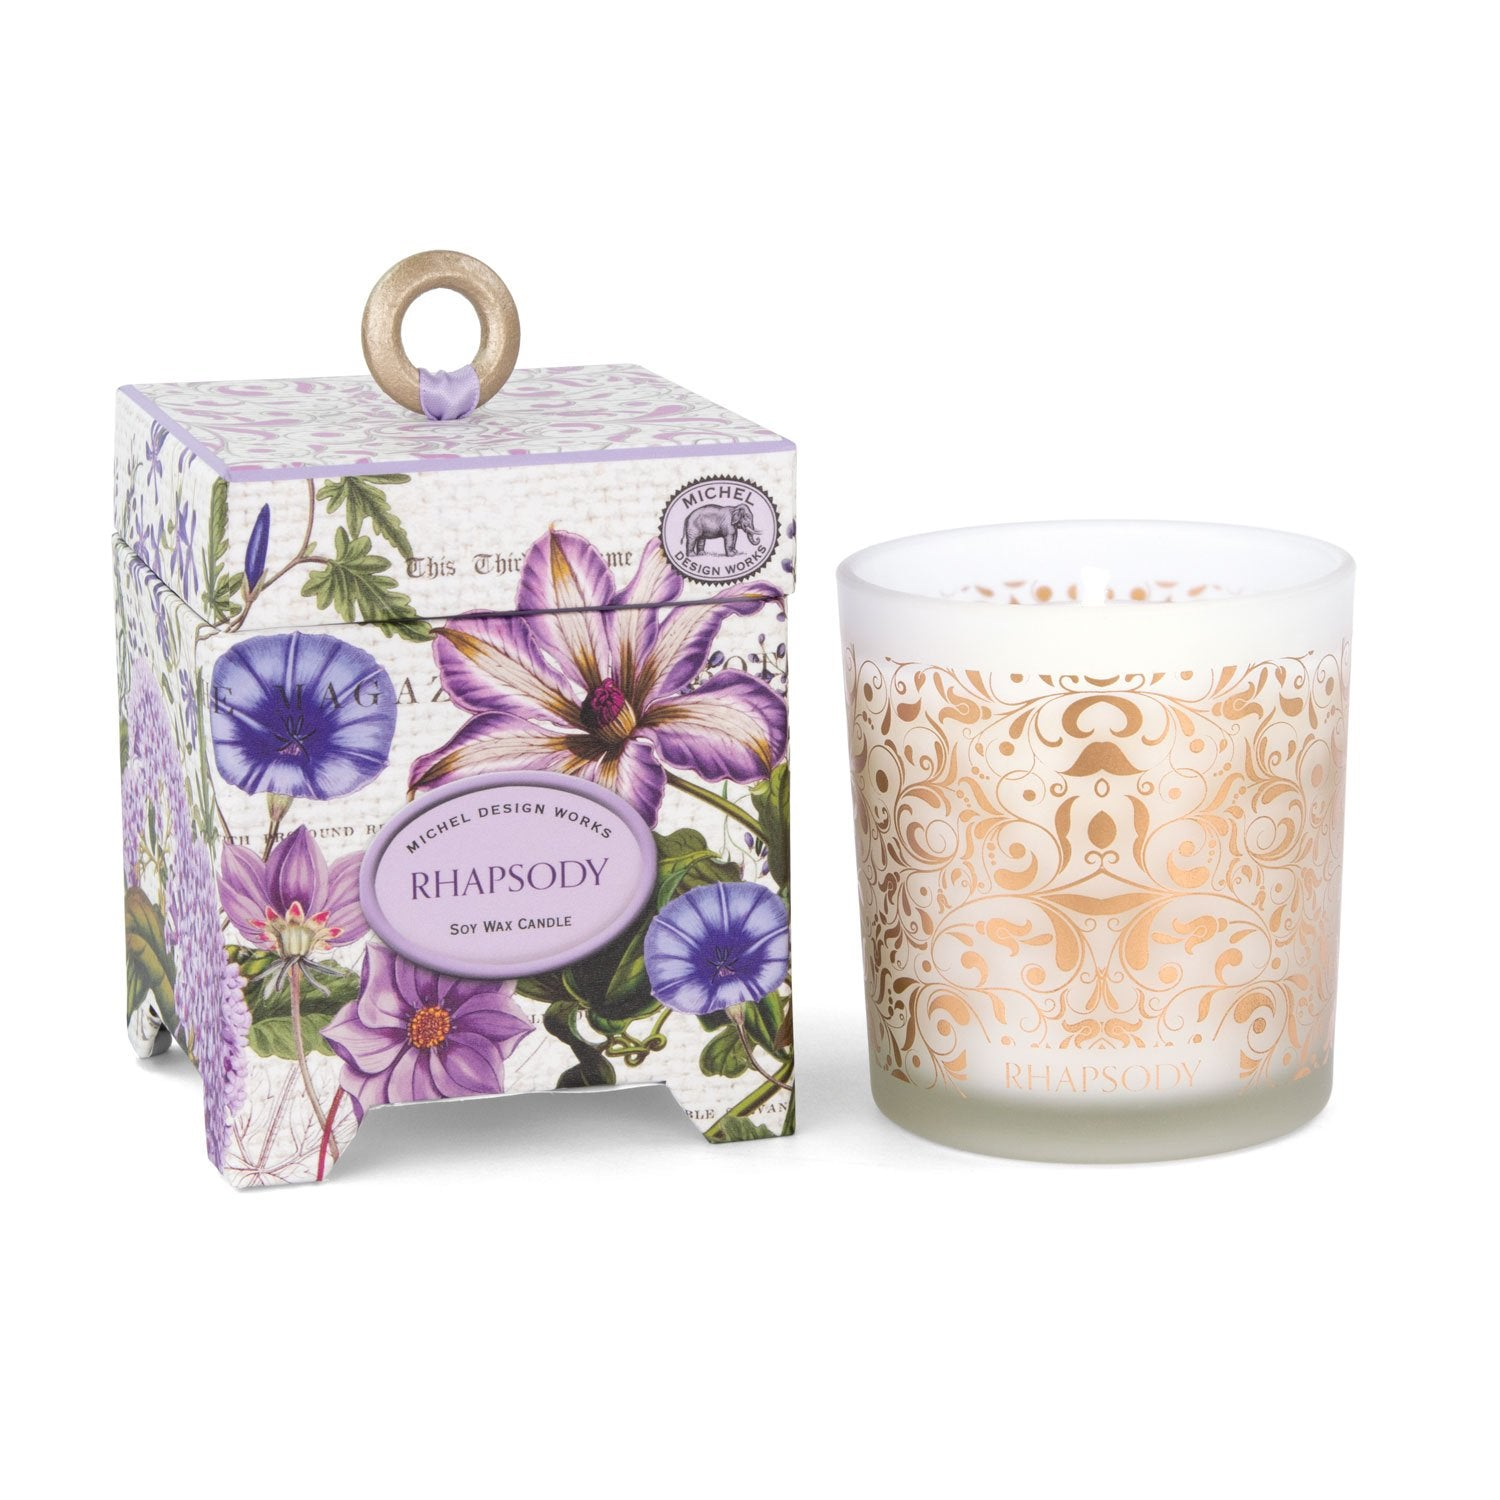 Rhapsody 6.5 oz. Soy Wax Candle